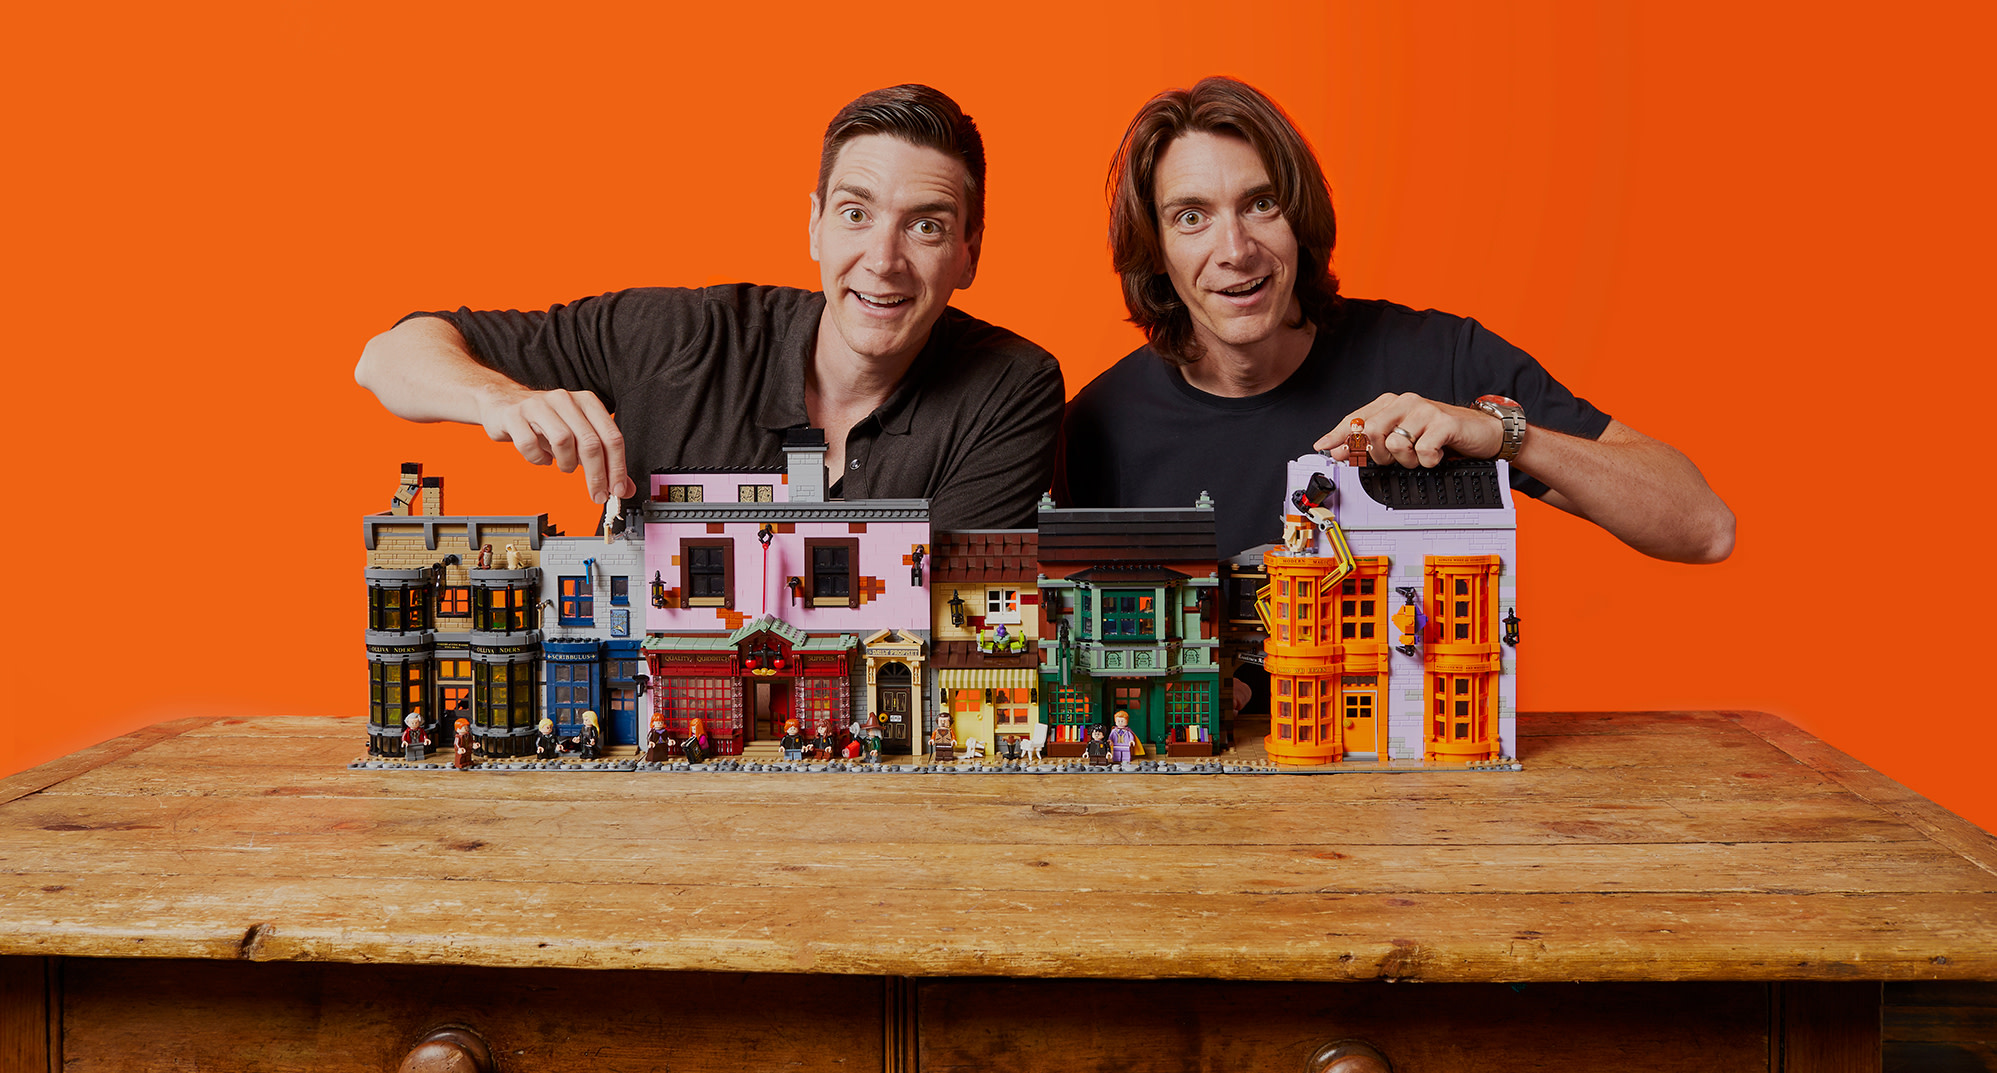 phelps-twins-crop-lego-hero